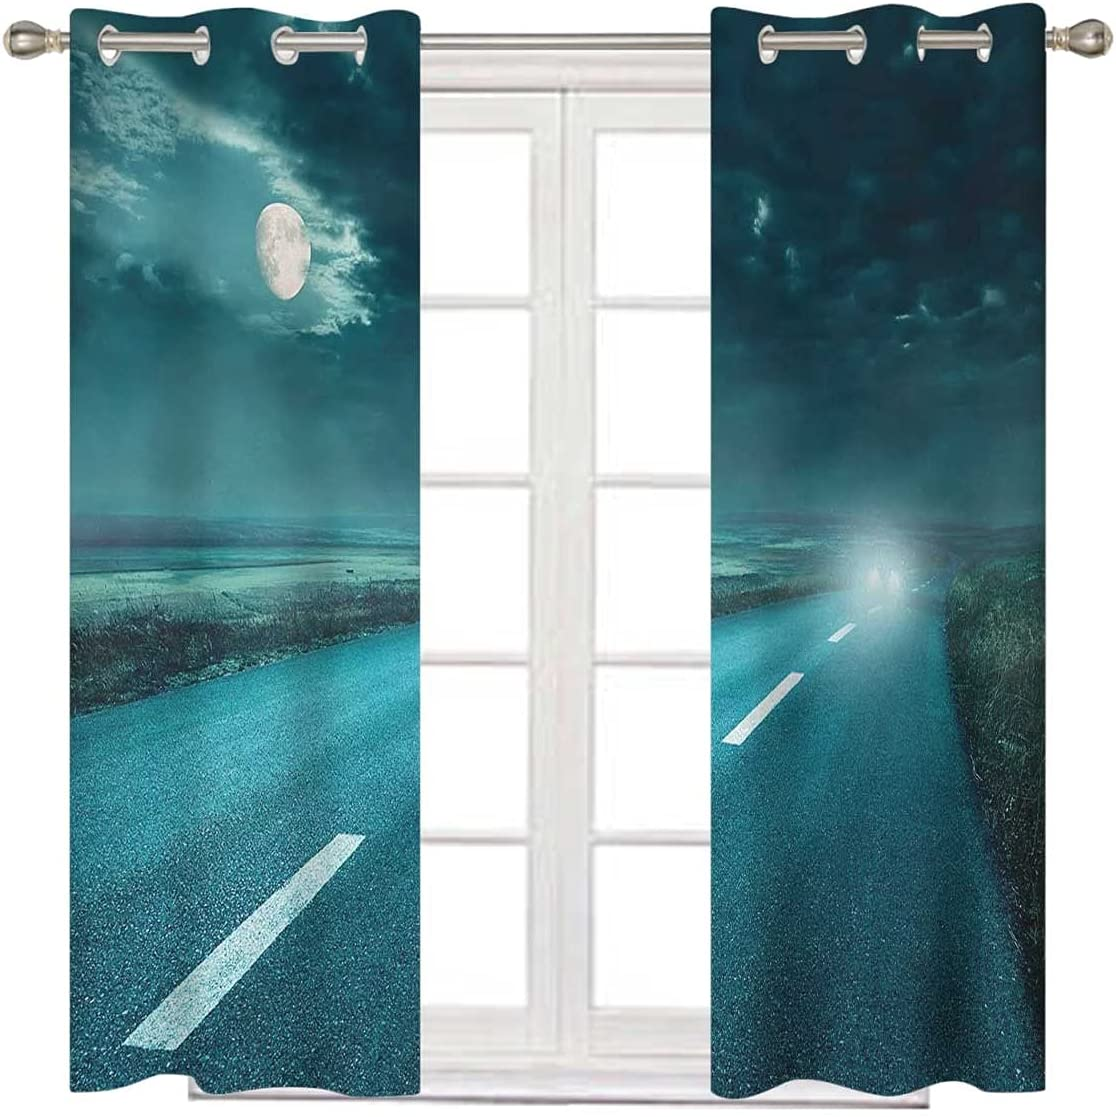 Horror House Blackout Curtain Panels New arrival 2 Long NEW before selling ☆ Blue Set Inches 63